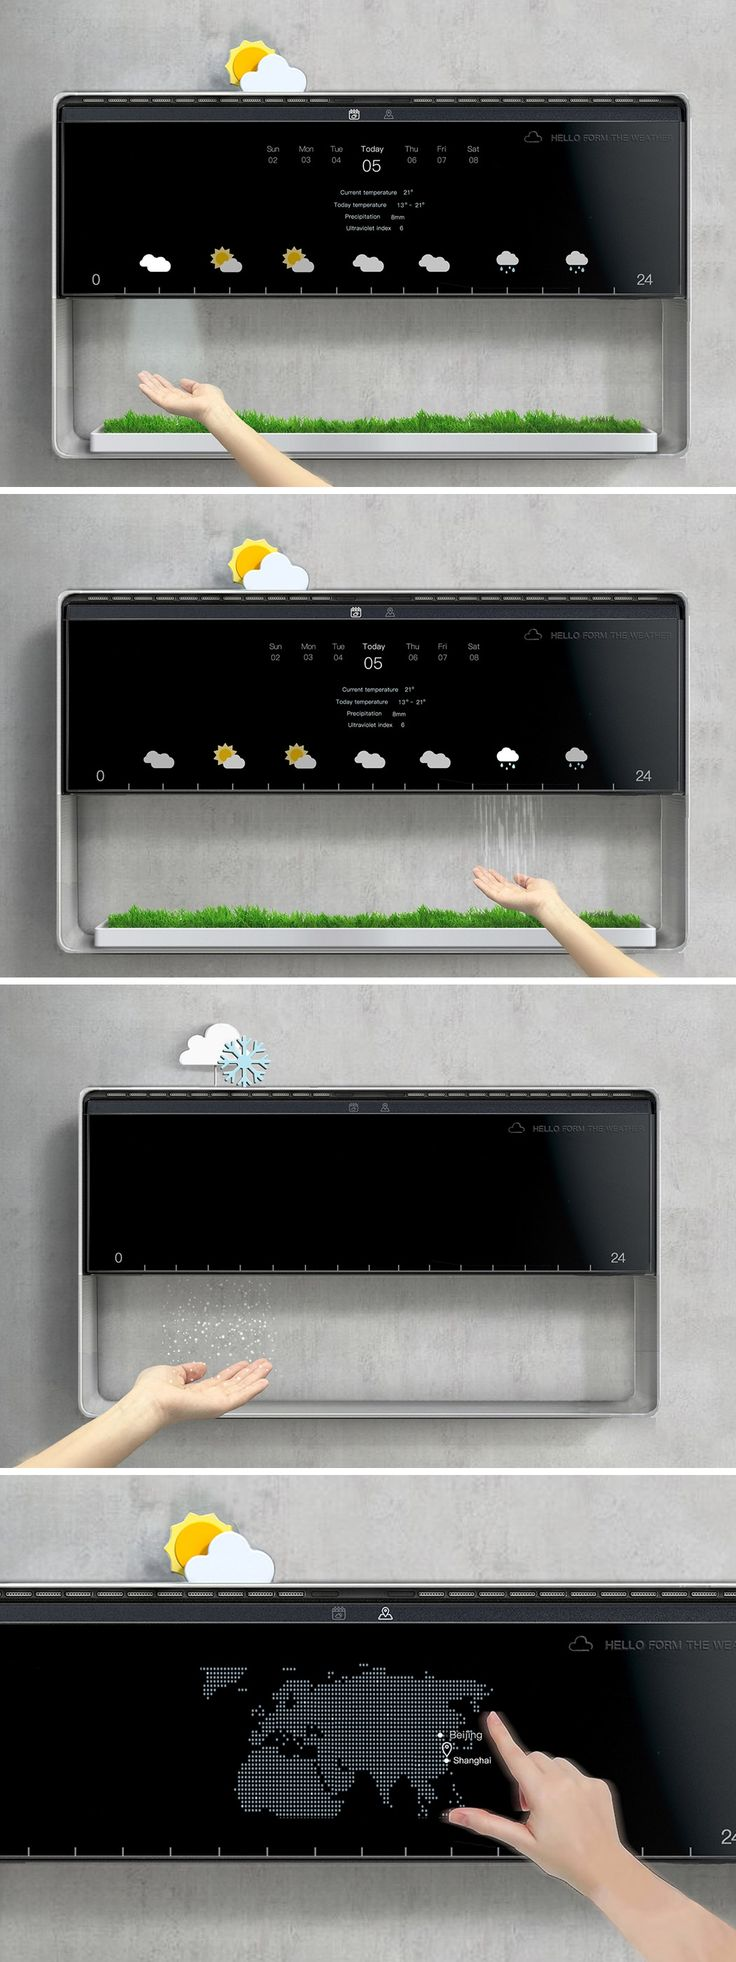 You can read the weather… OR you can feel it! That's the idea behind this imaginative concept by Ellie Zeng. Rather than look to the TV, a newspaper, or app to tell you whether you should bundle up or sport your shorts, this clever design recreates the outdoor conditions in a compact microclimate that you can feel with your hands before venturing outside.